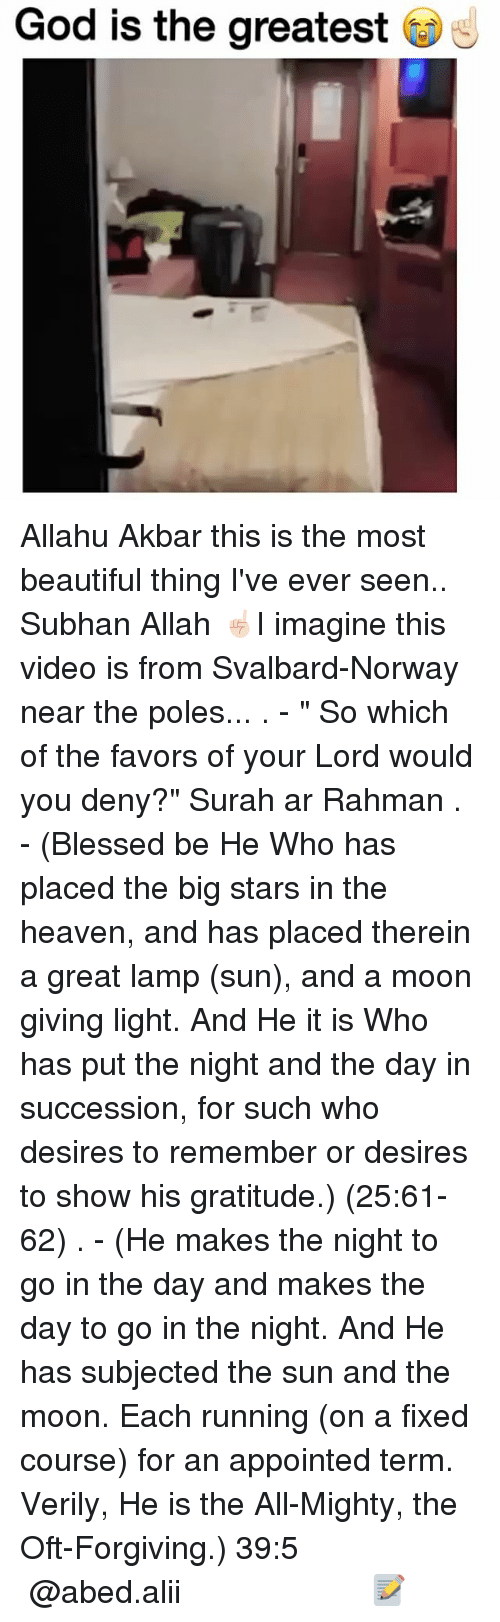 "akbar: God is the greatest Allahu Akbar this is the most beautiful thing I've ever seen.. Subhan Allah ☝🏻I imagine this video is from Svalbard-Norway near the poles... . - "" So which of the favors of your Lord would you deny?"" Surah ar Rahman . - (Blessed be He Who has placed the big stars in the heaven, and has placed therein a great lamp (sun), and a moon giving light. And He it is Who has put the night and the day in succession, for such who desires to remember or desires to show his gratitude.) (25:61-62) . - (He makes the night to go in the day and makes the day to go in the night. And He has subjected the sun and the moon. Each running (on a fixed course) for an appointed term. Verily, He is the All-Mighty, the Oft-Forgiving.) ﴿39:5﴾ ▃▃▃▃▃▃▃▃▃▃▃▃▃▃▃▃▃▃▃▃ @abed.alii 📝"